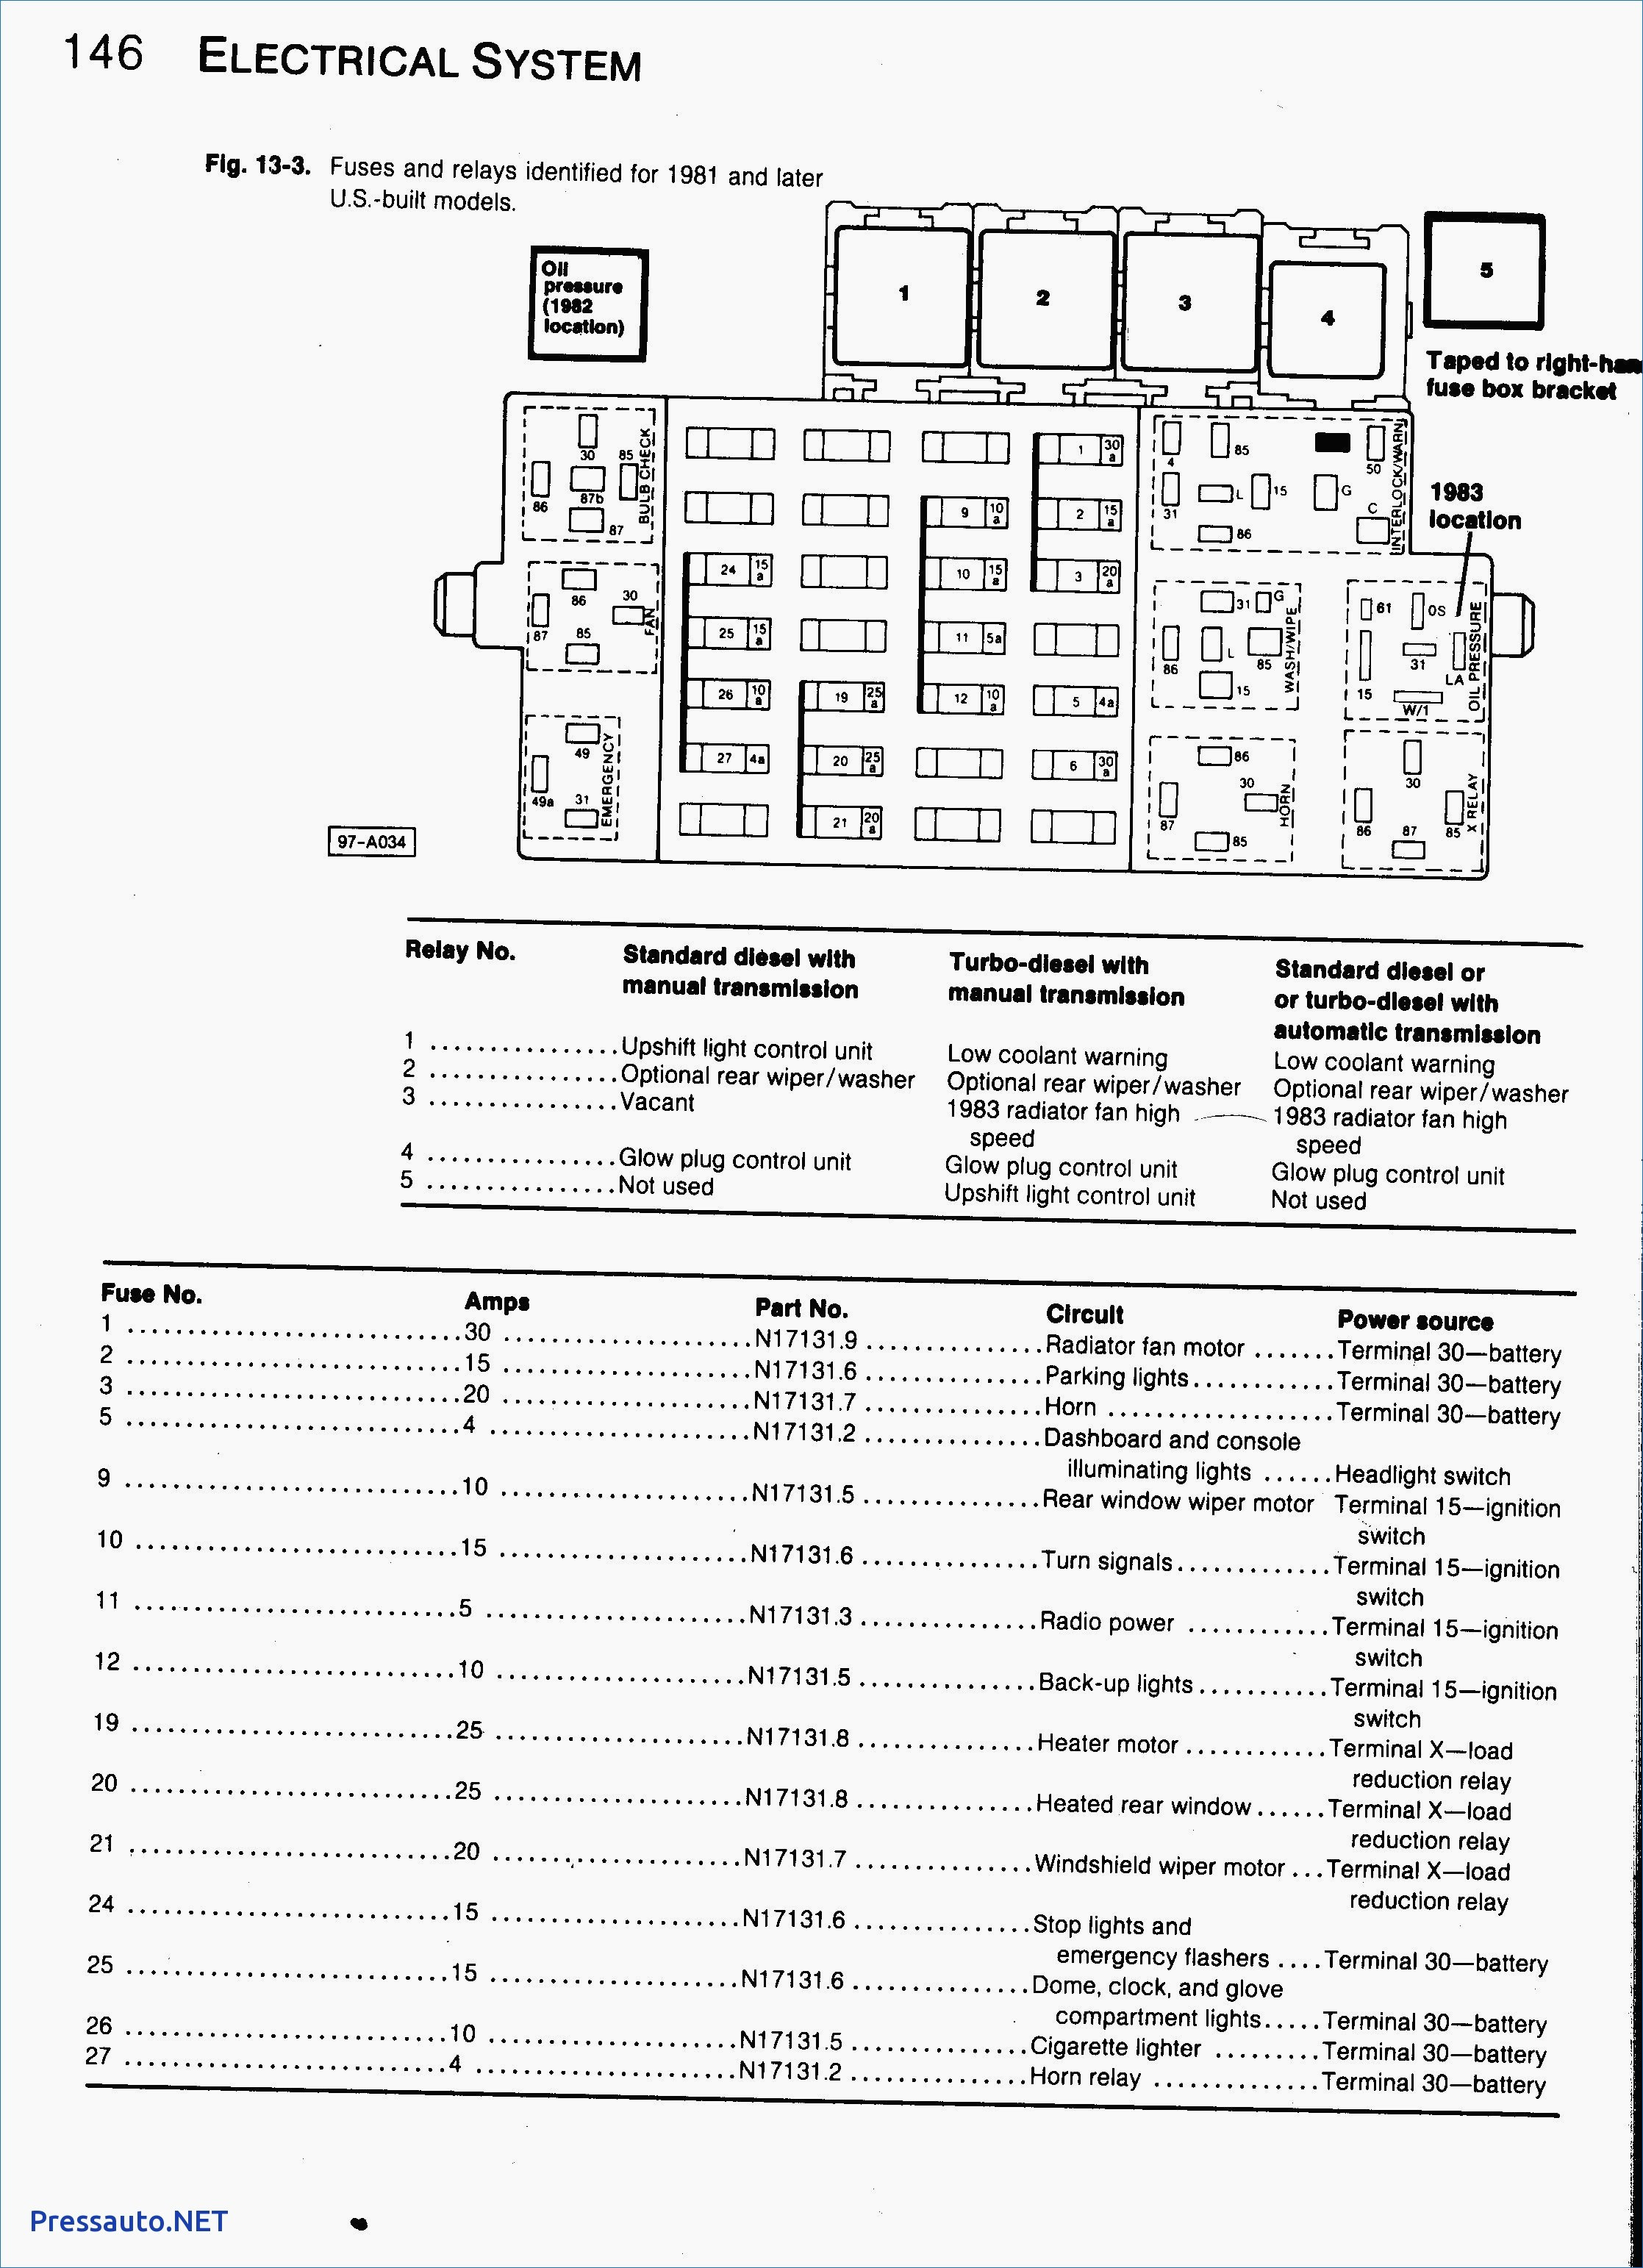 2003 Hummer Fuse Box Wiring Diagram Variant Variant Emilia Fise It